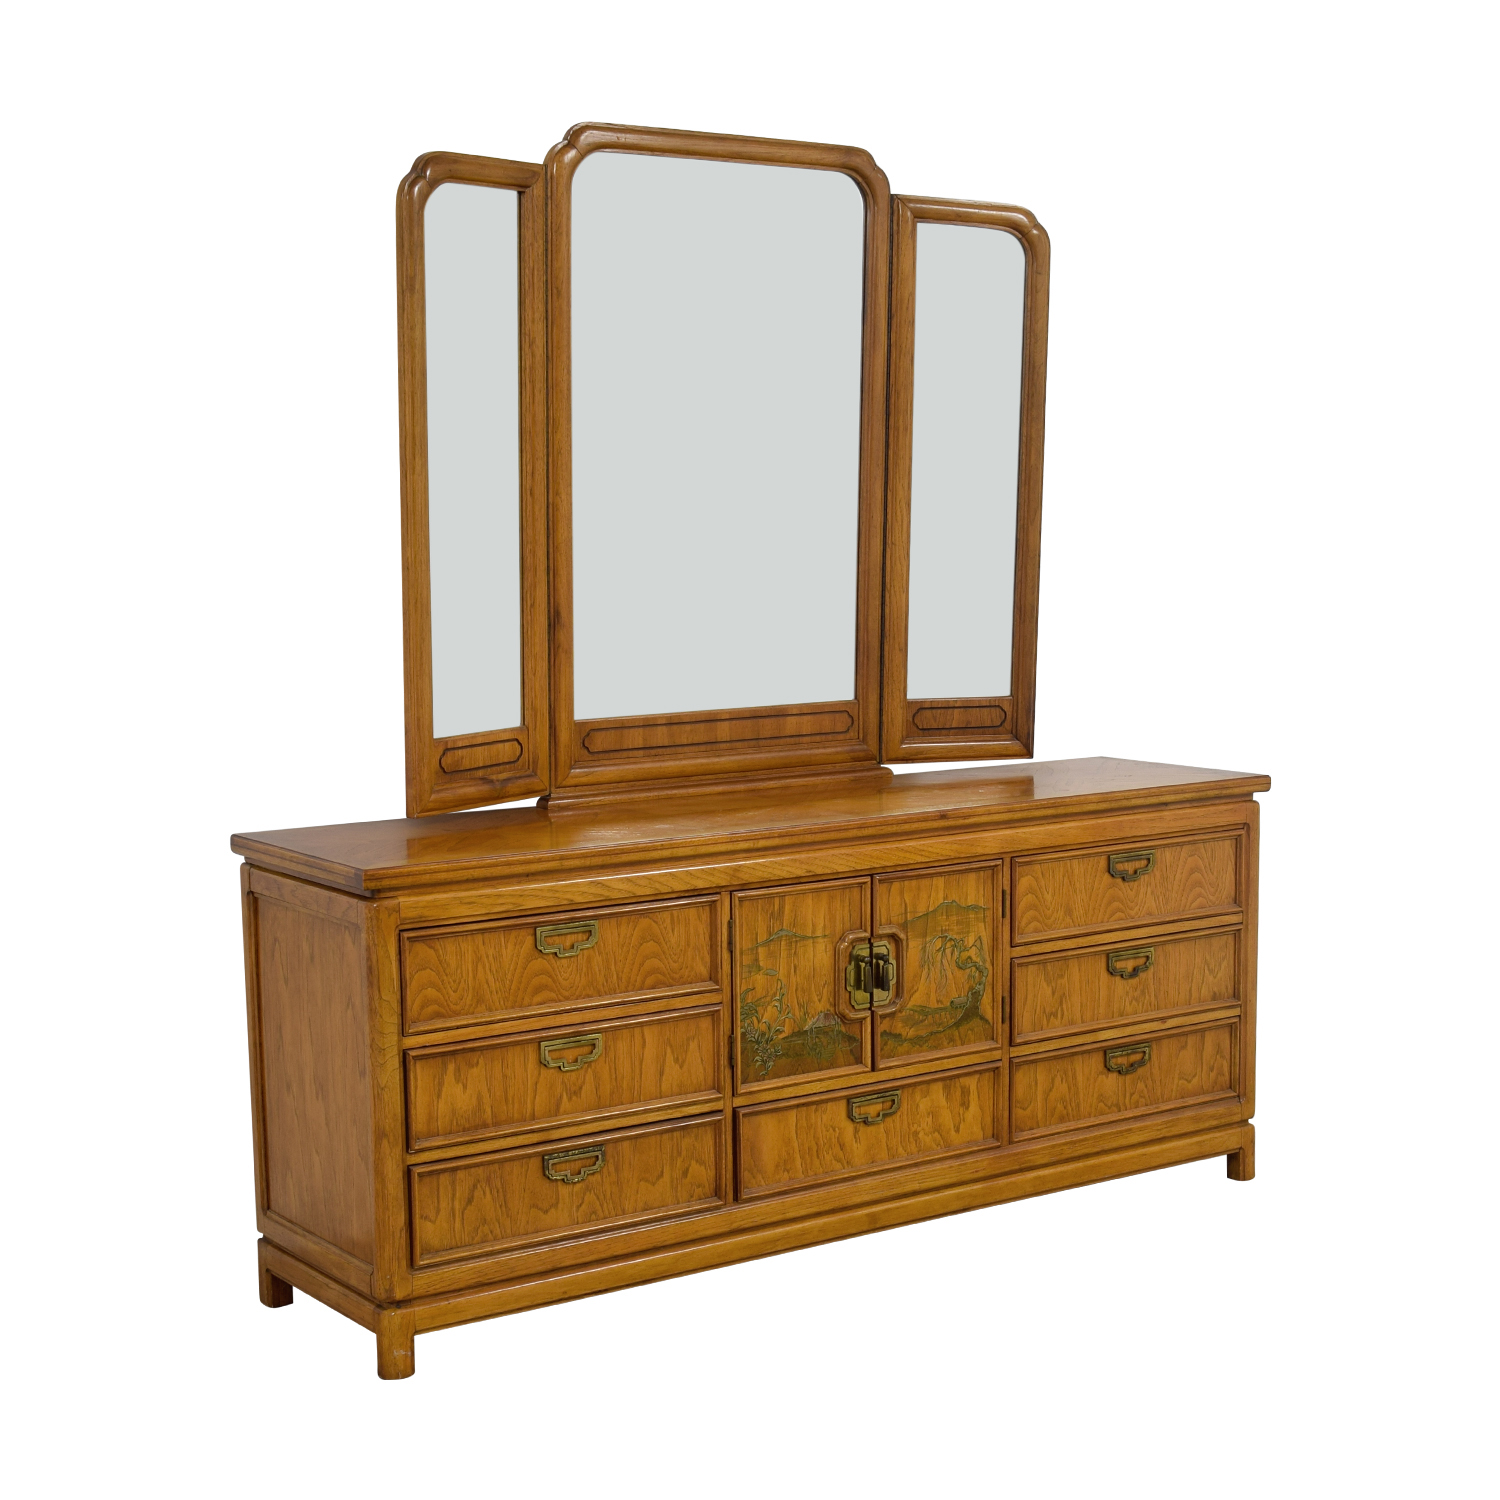 shop Thomasville Thomasville Nine-Drawer Dresser with Folding MIrror online